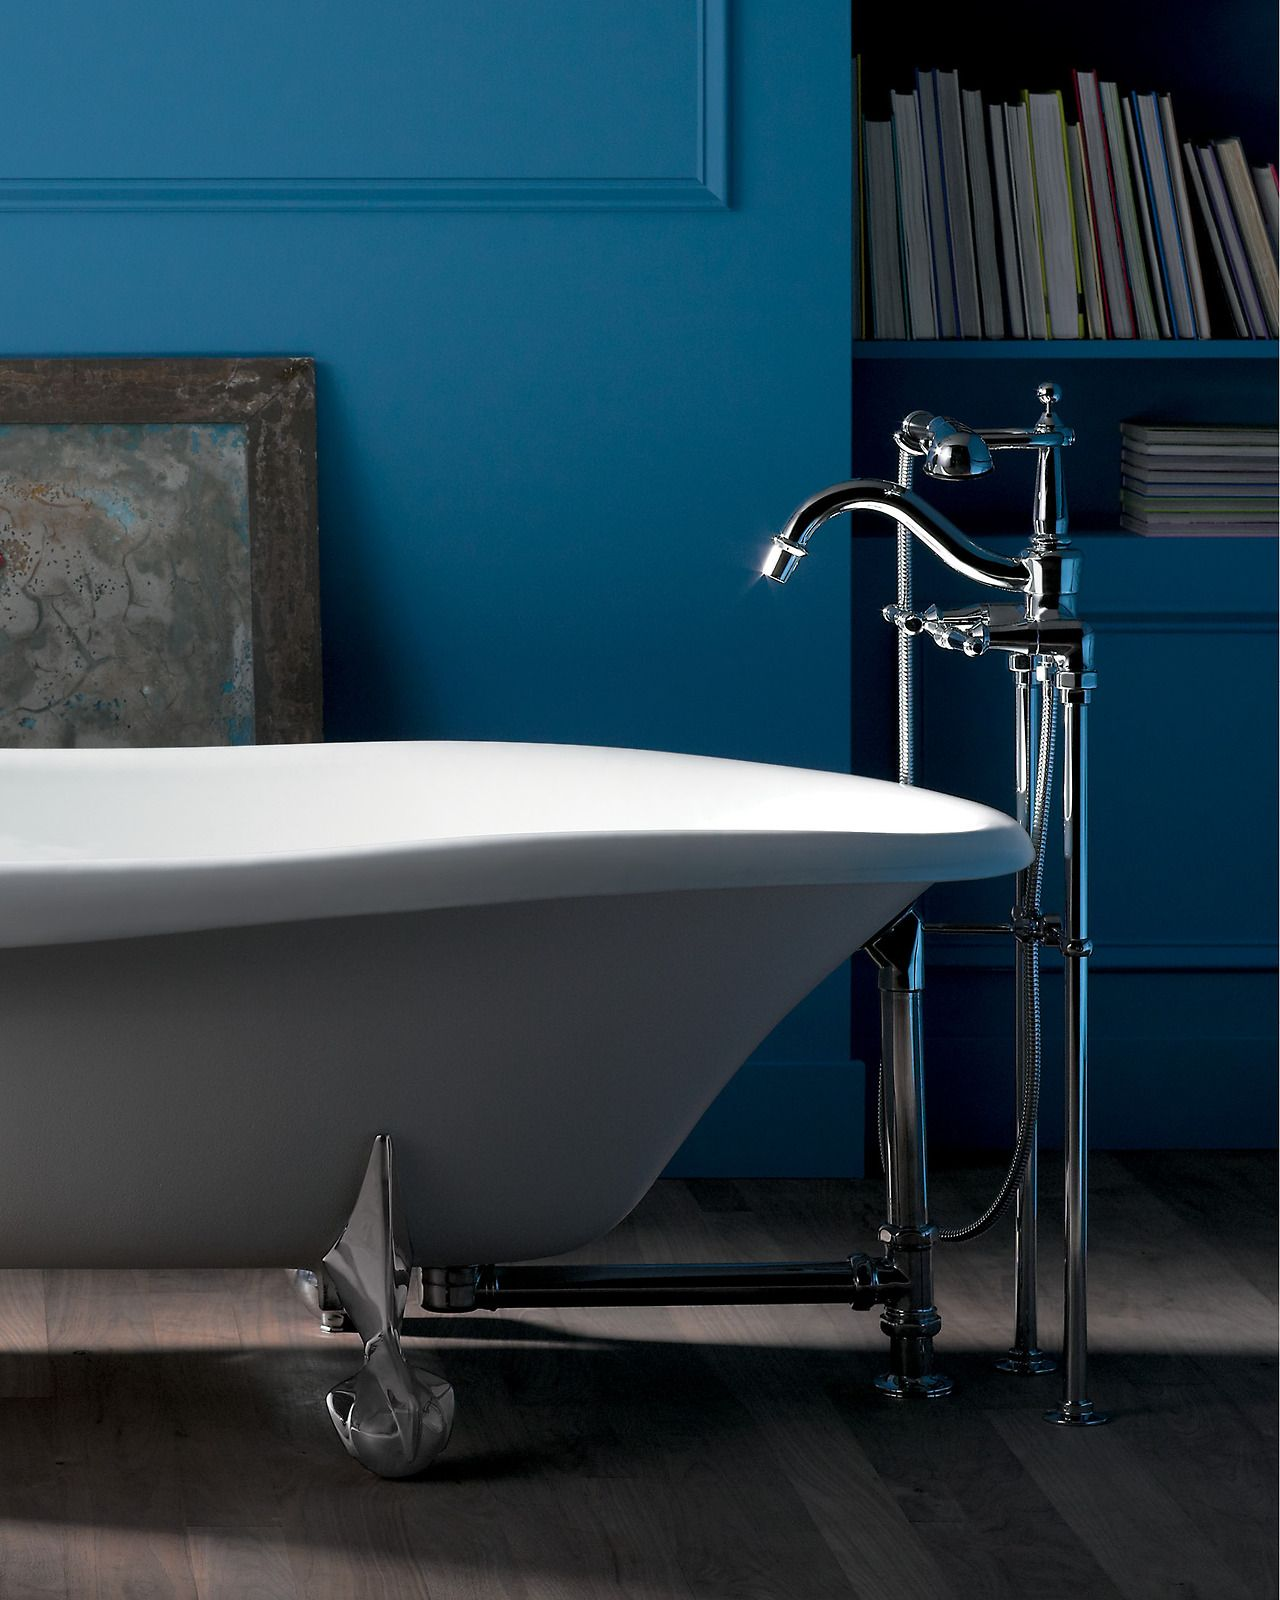 Attractive Kohler Deep Tub Sketch - Bathtub Design Ideas - klotsnet.com